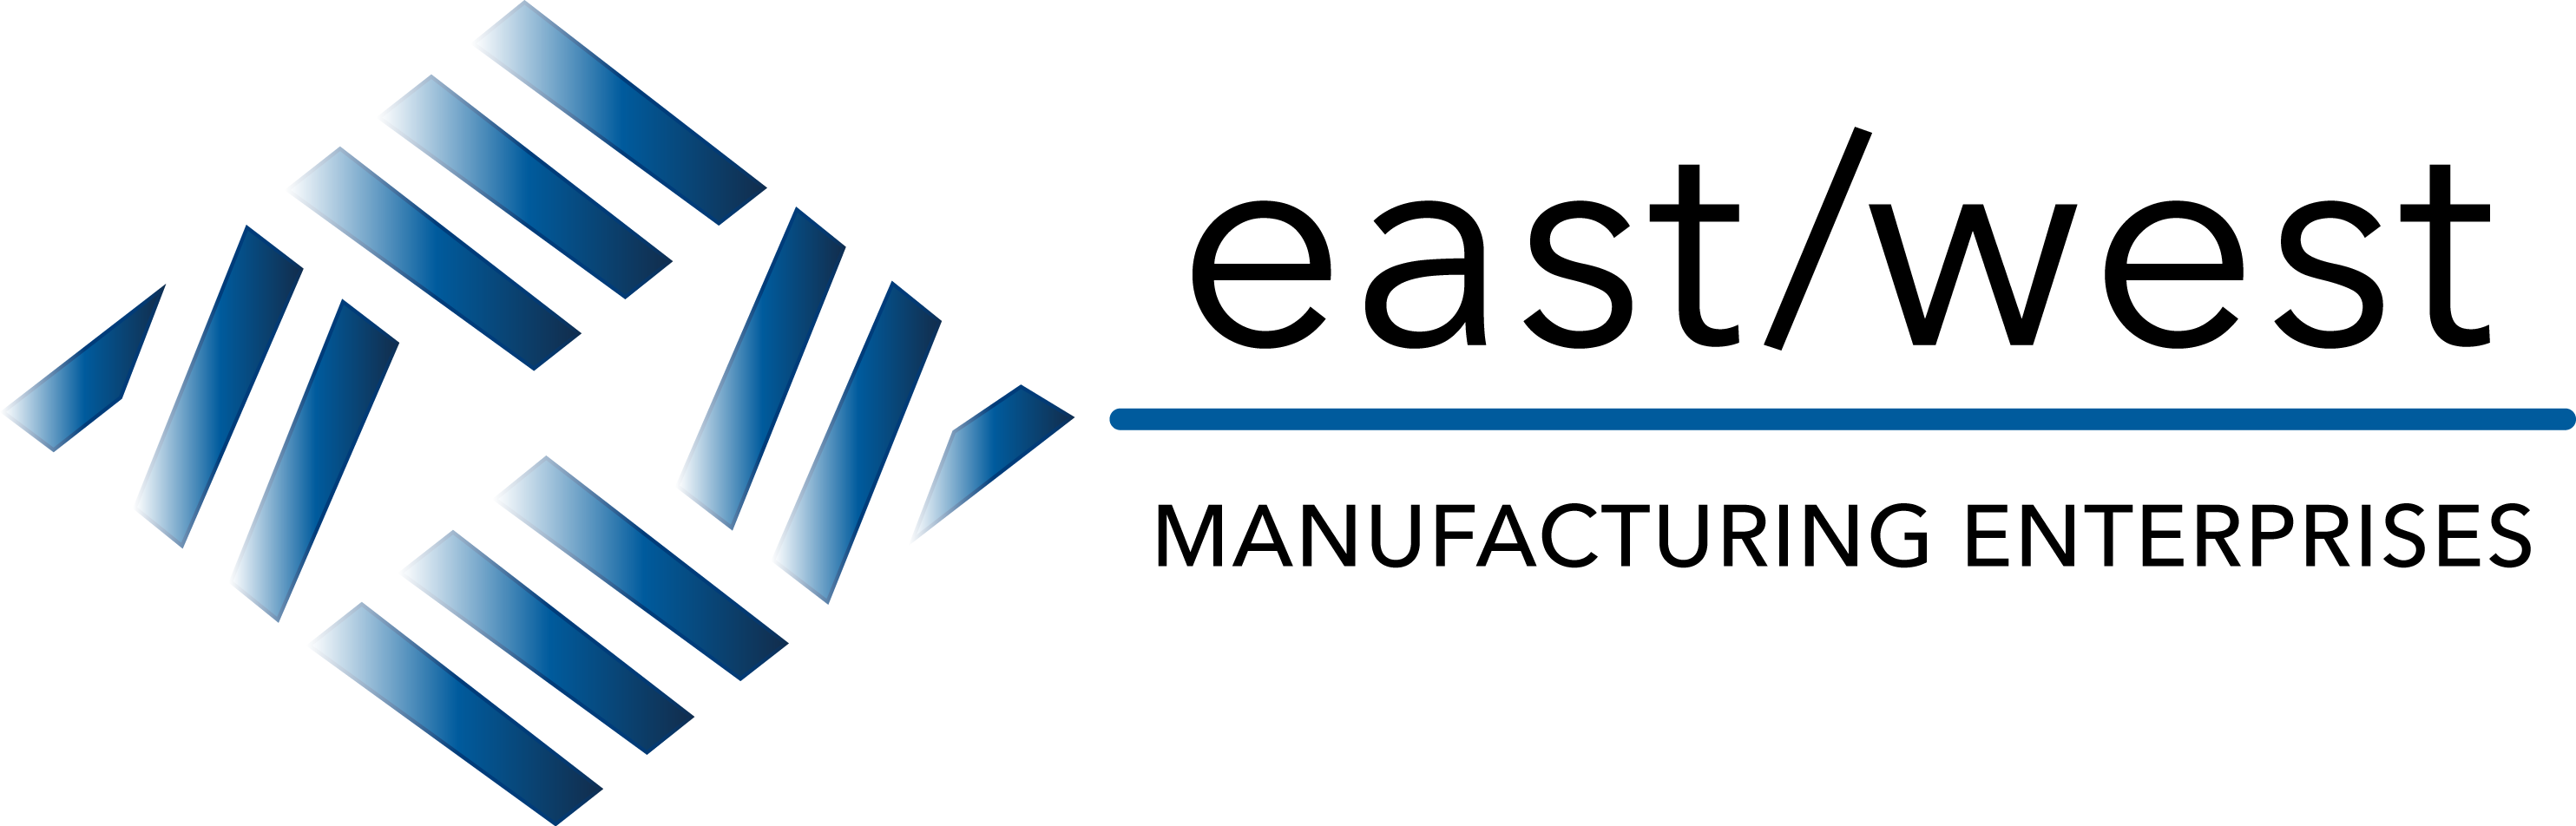 East/West Manufacturing Enterprises Earns ISO 9001:2015